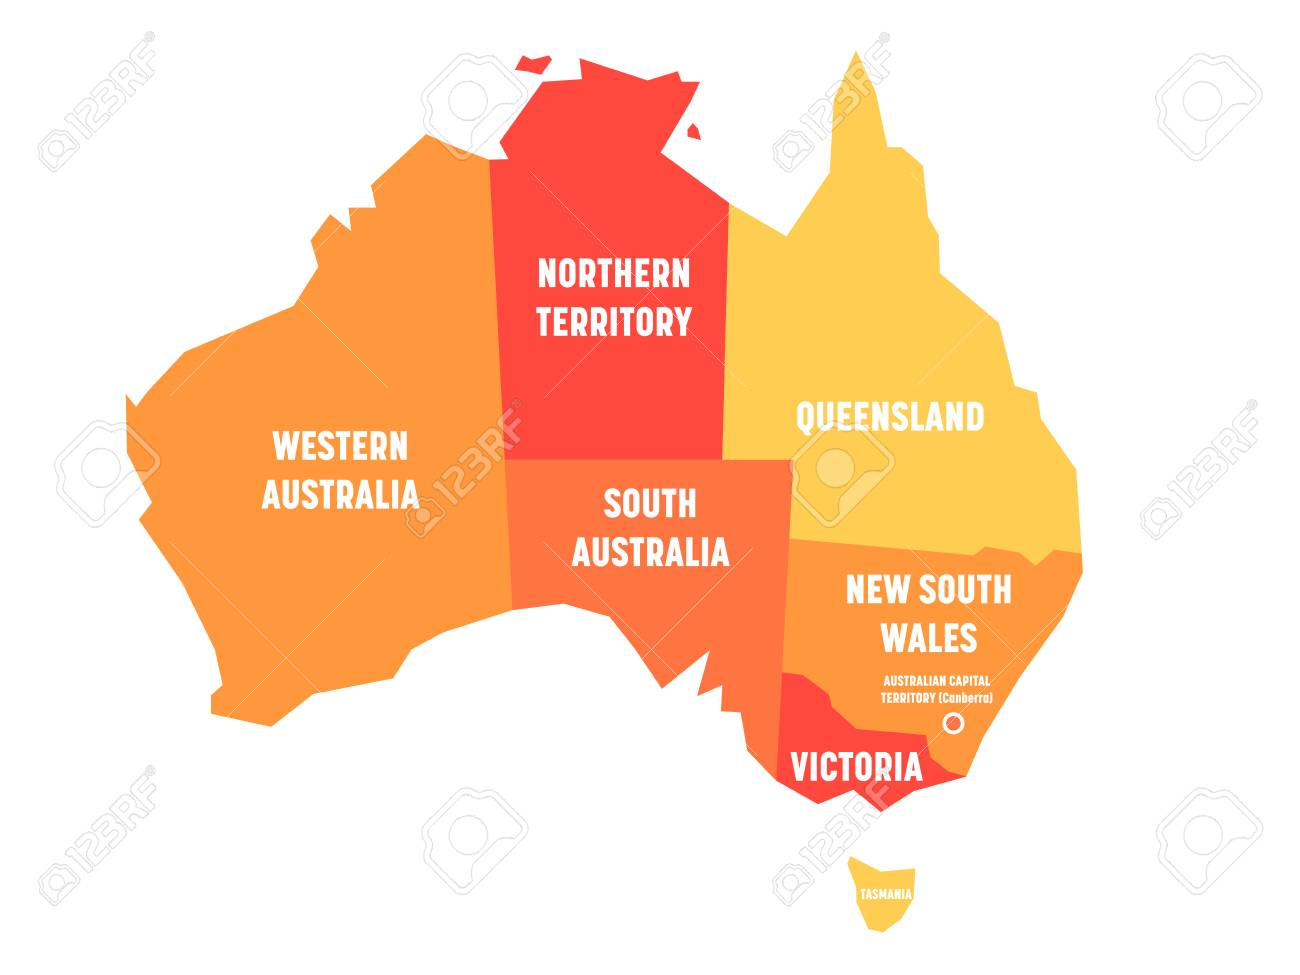 Map Of Australia Showing States.Simplified Map Of Australia Divided Into States And Territories